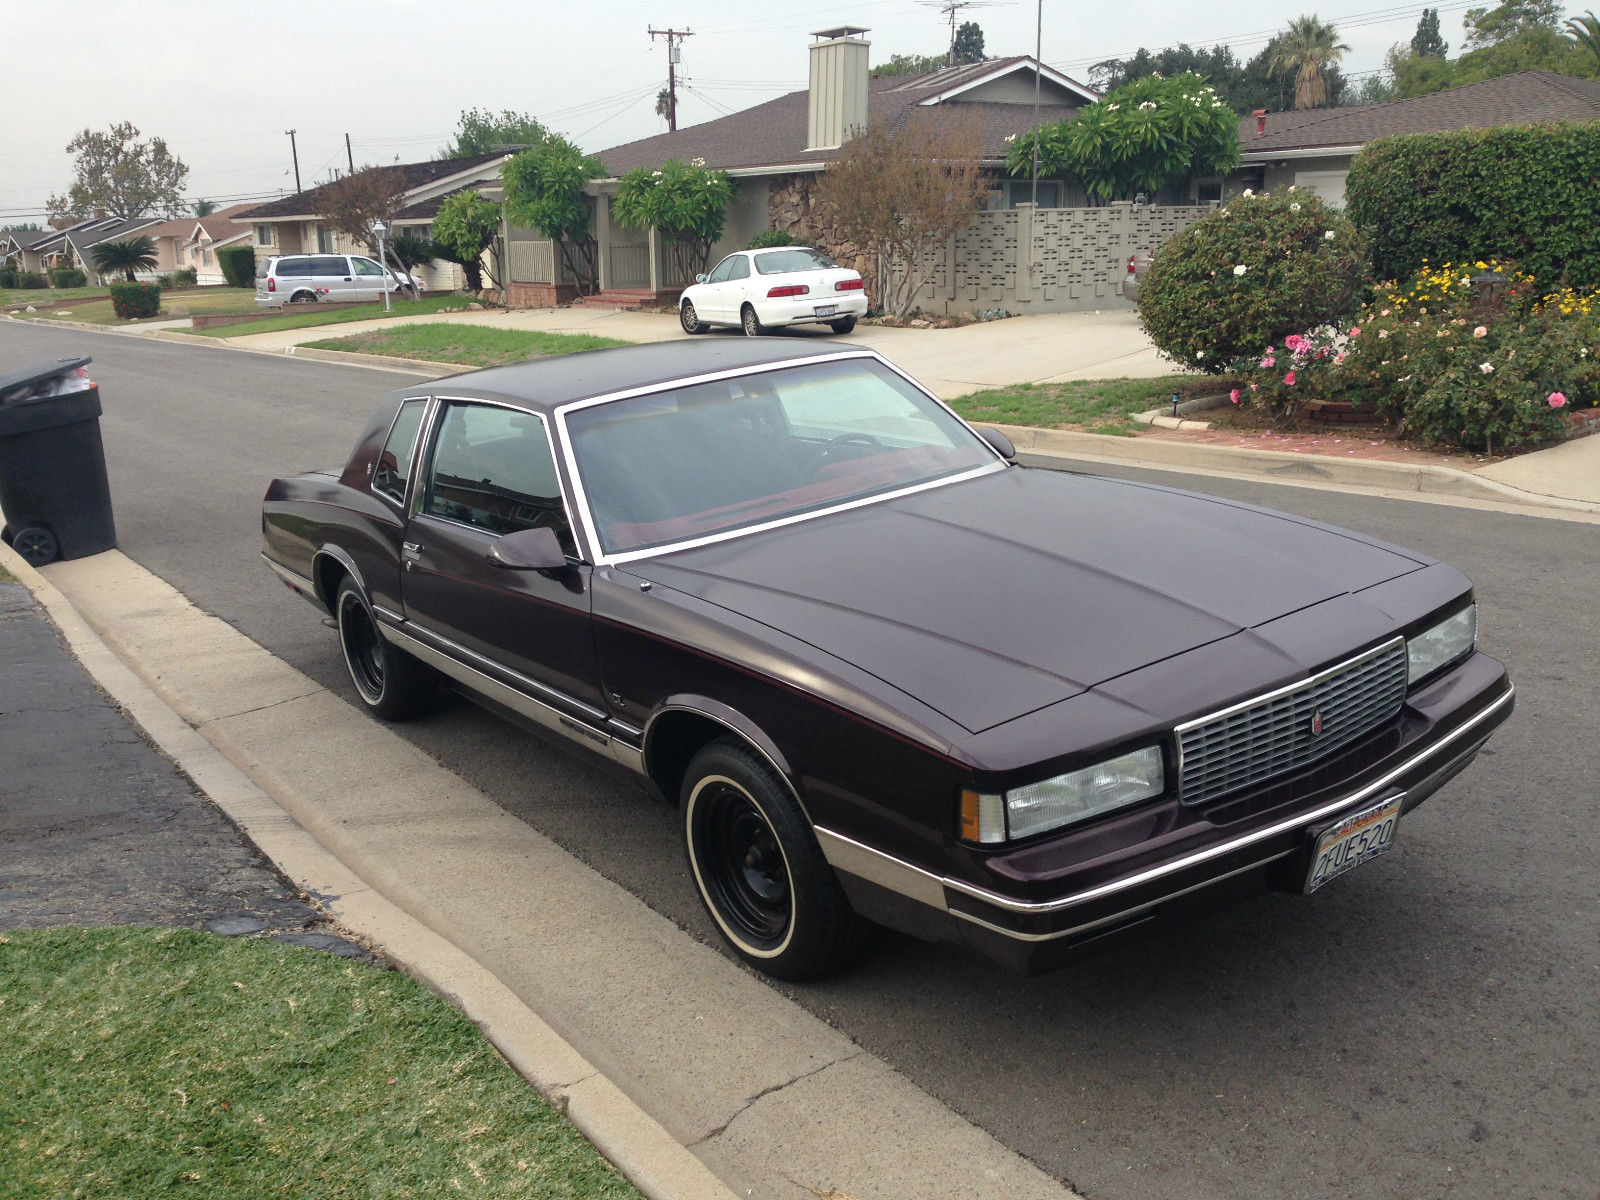 1987 Monte Carlo Ls 5 0l With Less Than 27k Original Miles